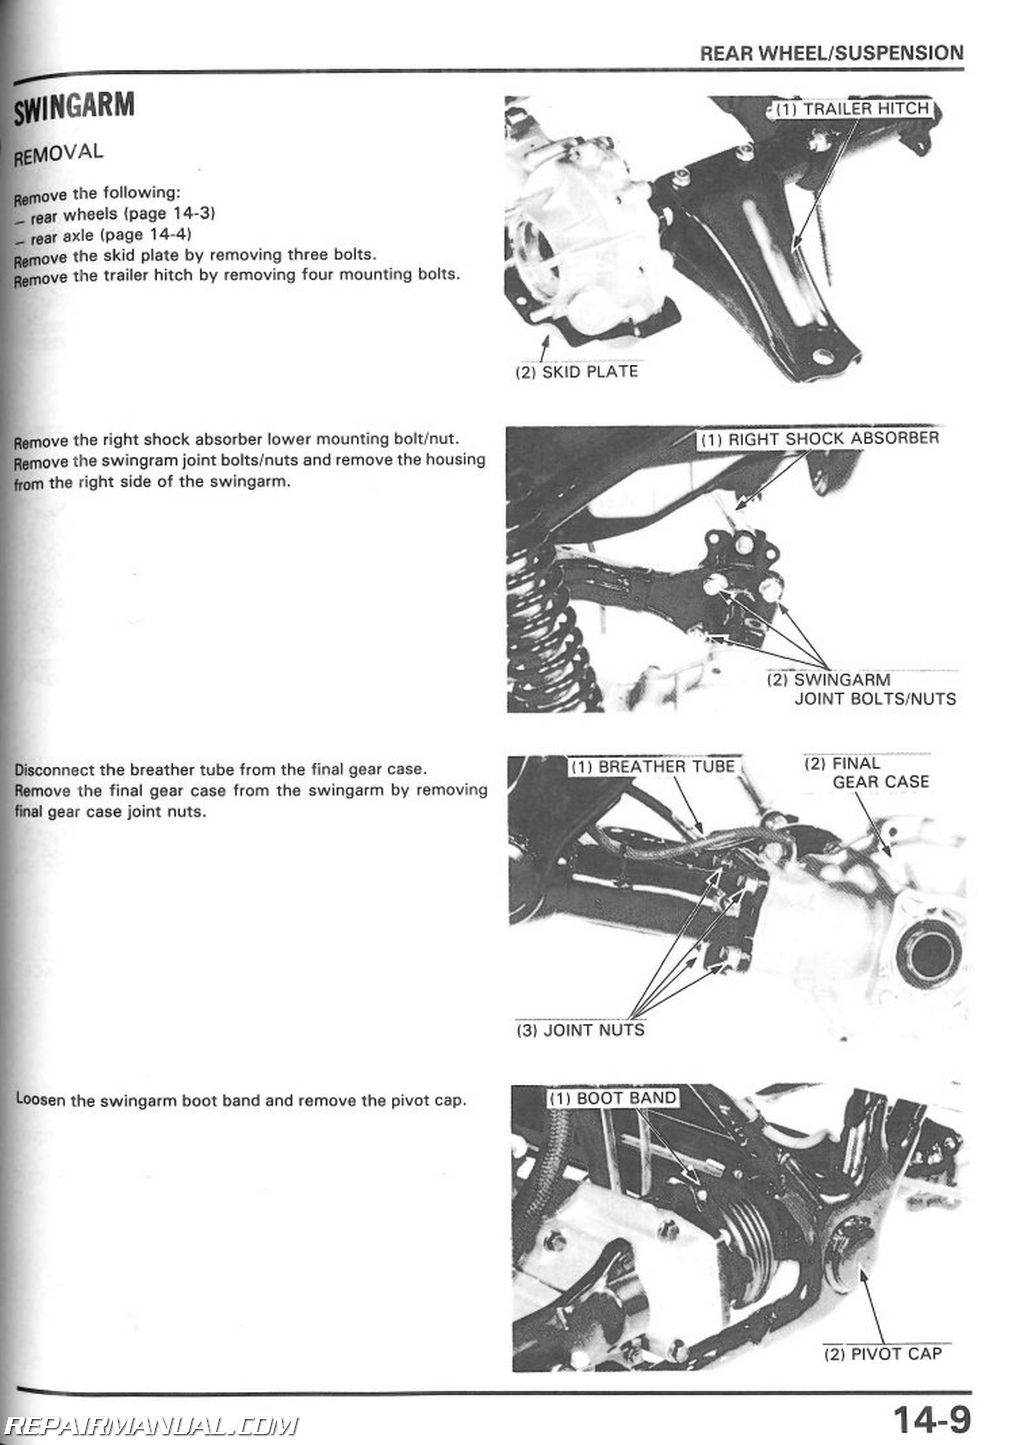 Suzuki An Burgman Scooter Cyclepedia Printed Service Manual X additionally Attachment together with Fuelpumpreplaceforhondafourtraxtrx Trx D Sku Descriptionimage additionally Honda Trx D Repair Manual Trx Fourtrax Foreman Atv Page together with Honda Fourtrax Foreman X Trx D Atv. on 1986 honda fourtrax 350 specifications